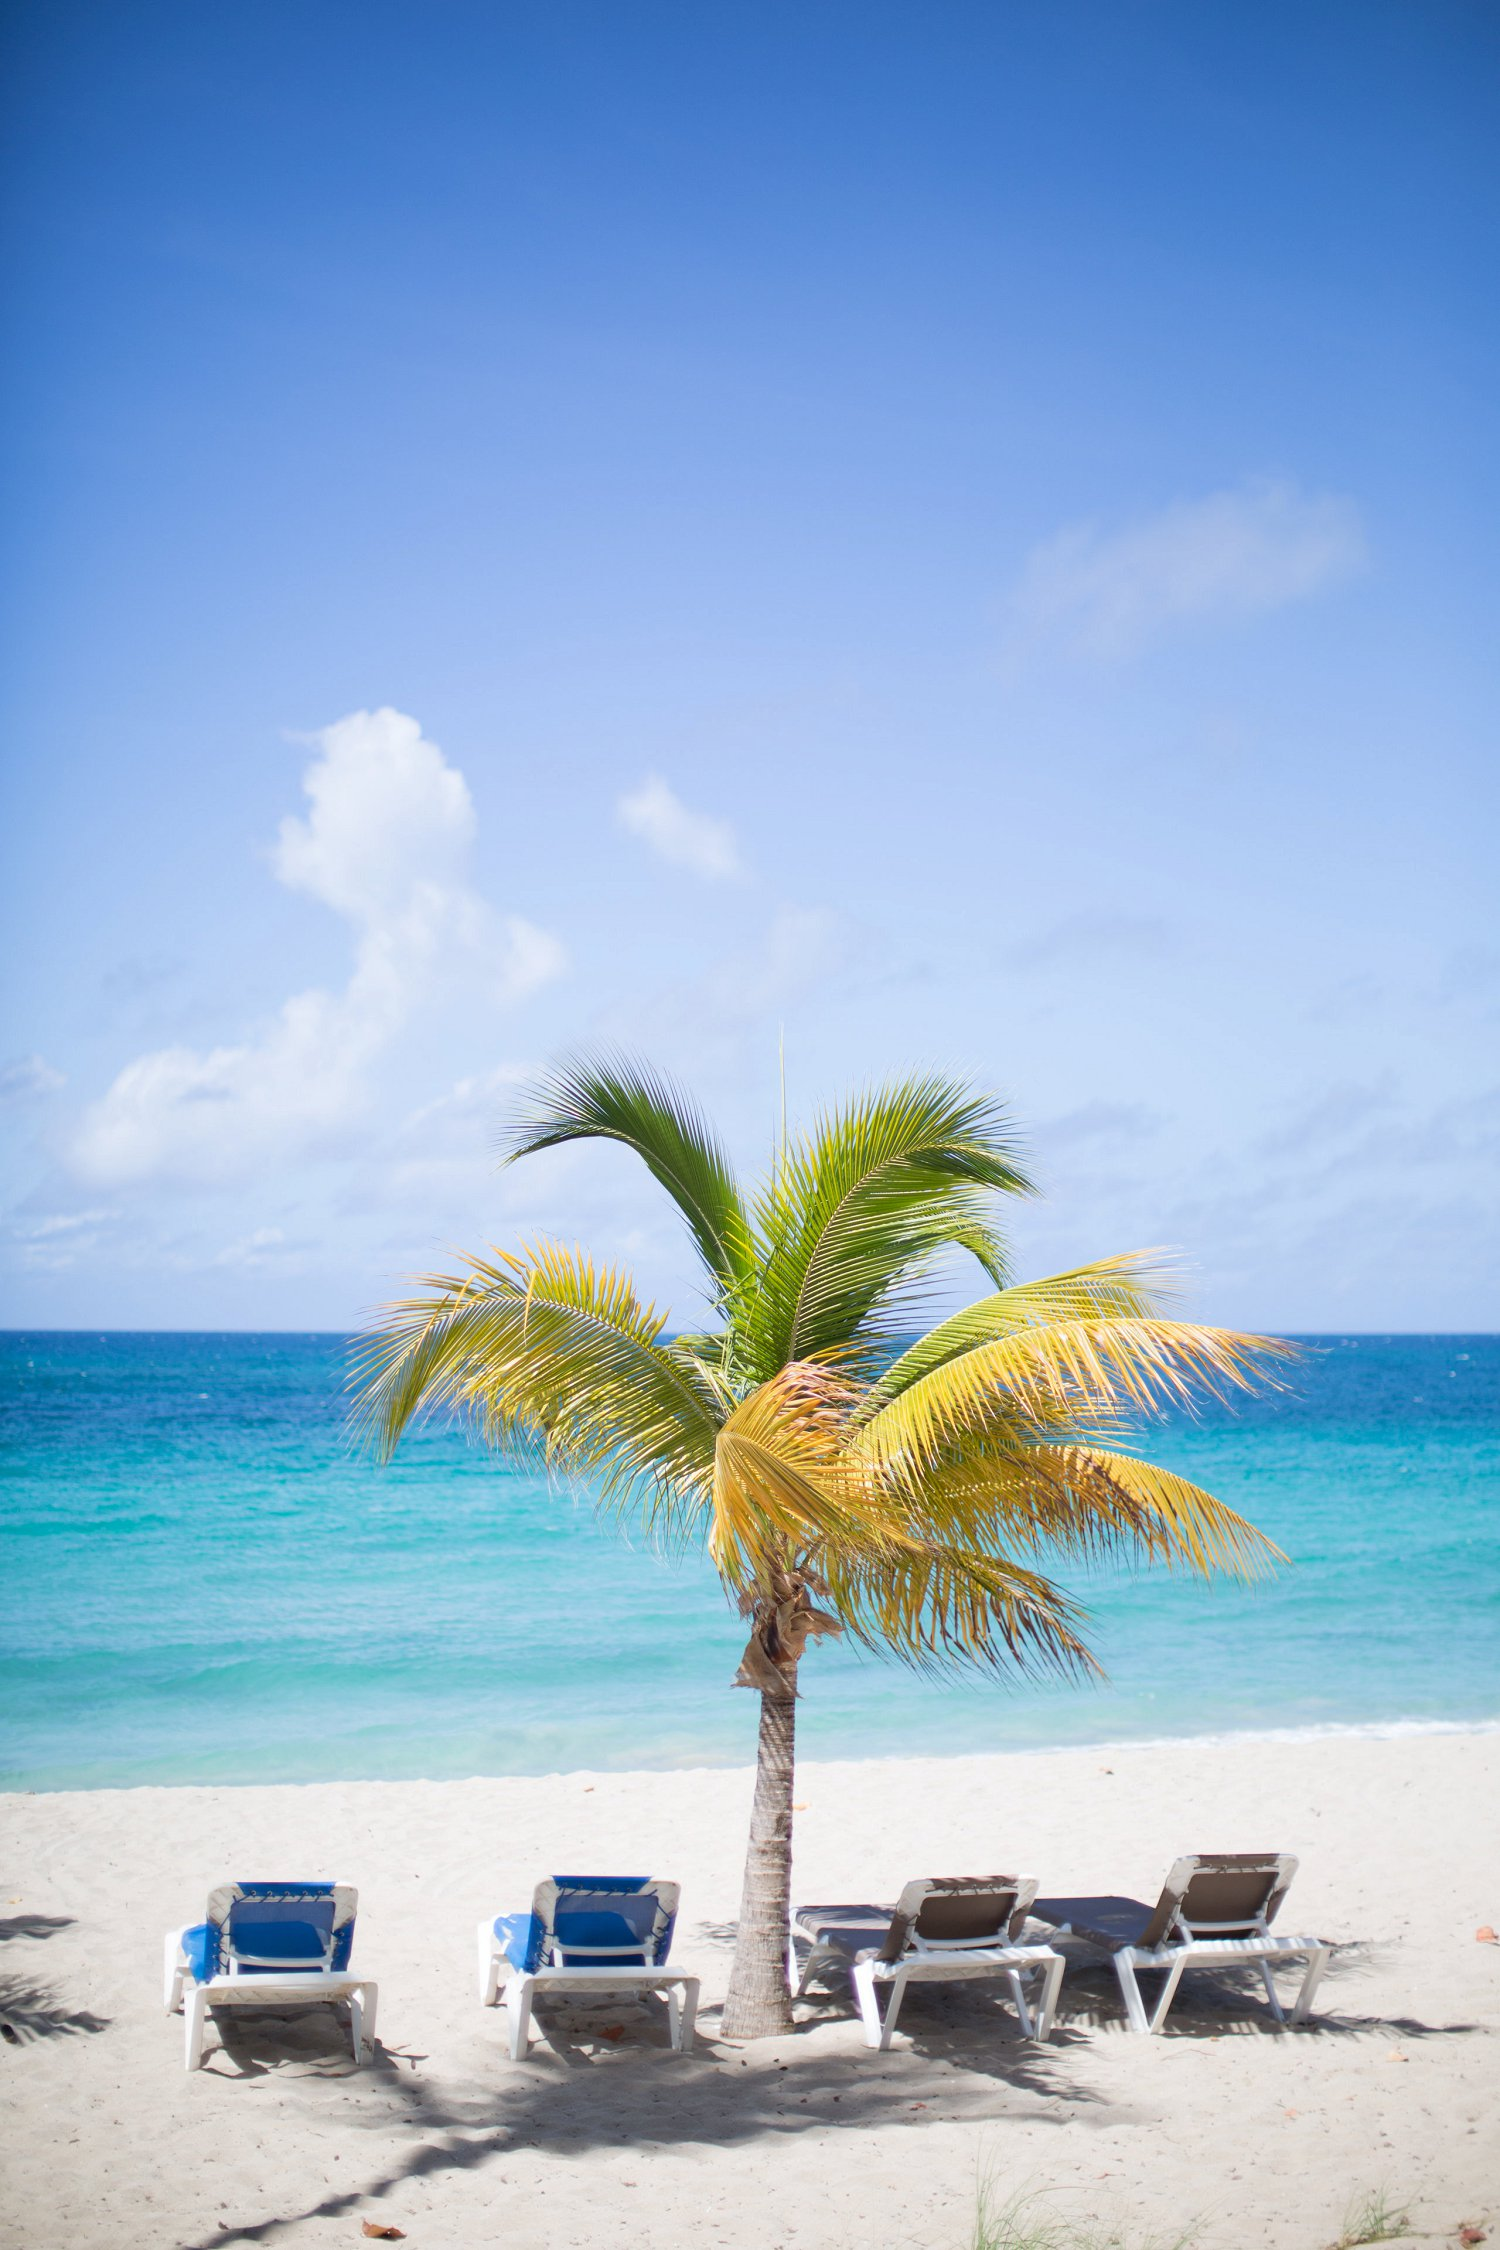 Coconut palm tree at Limetree beach, St. Thomas, US Virgin Islands.